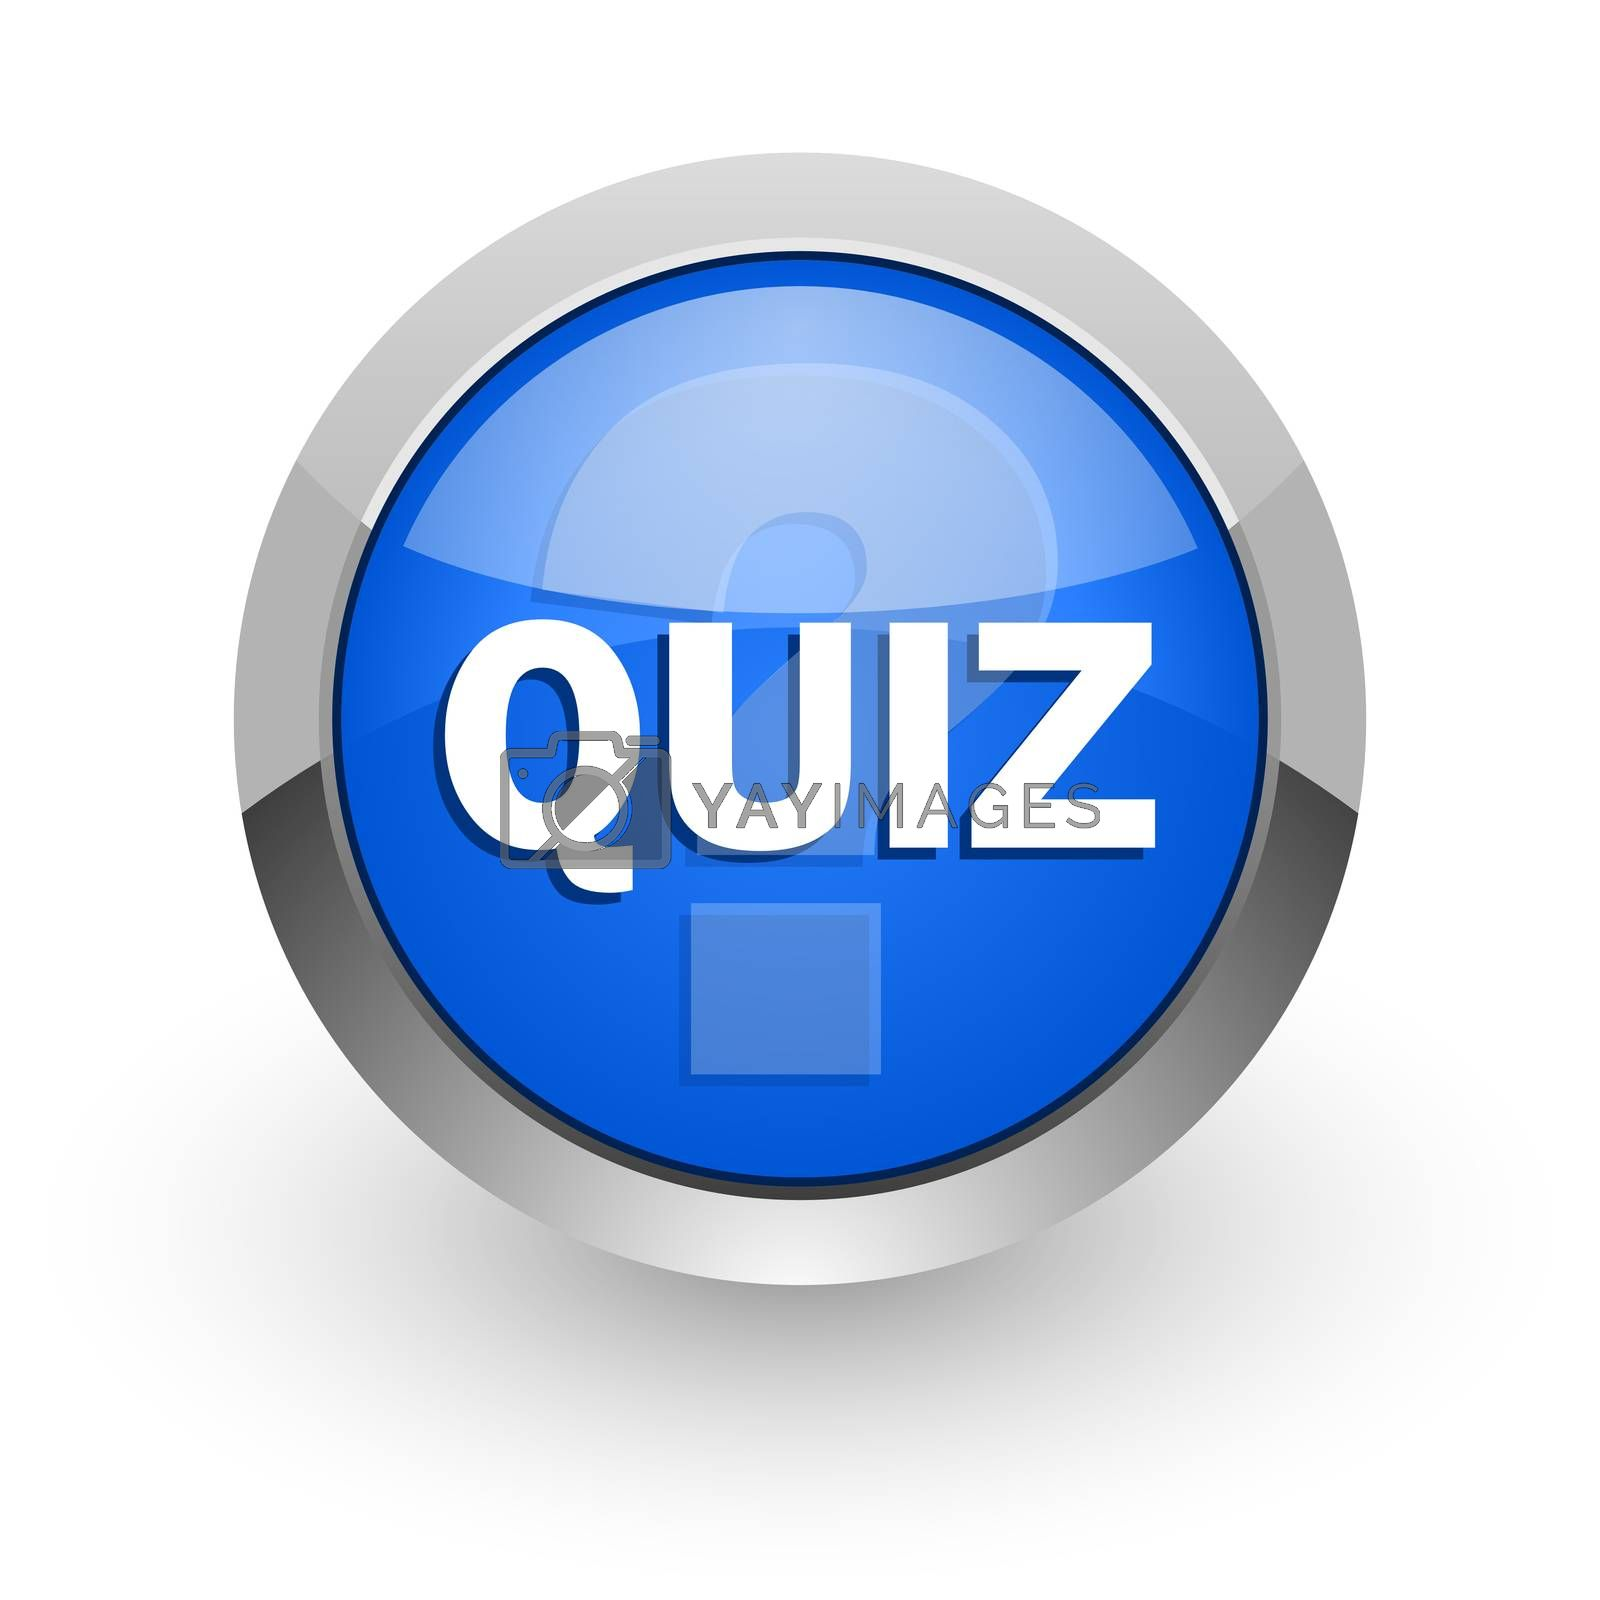 Royalty free image of quiz blue glossy web icon by alexwhite